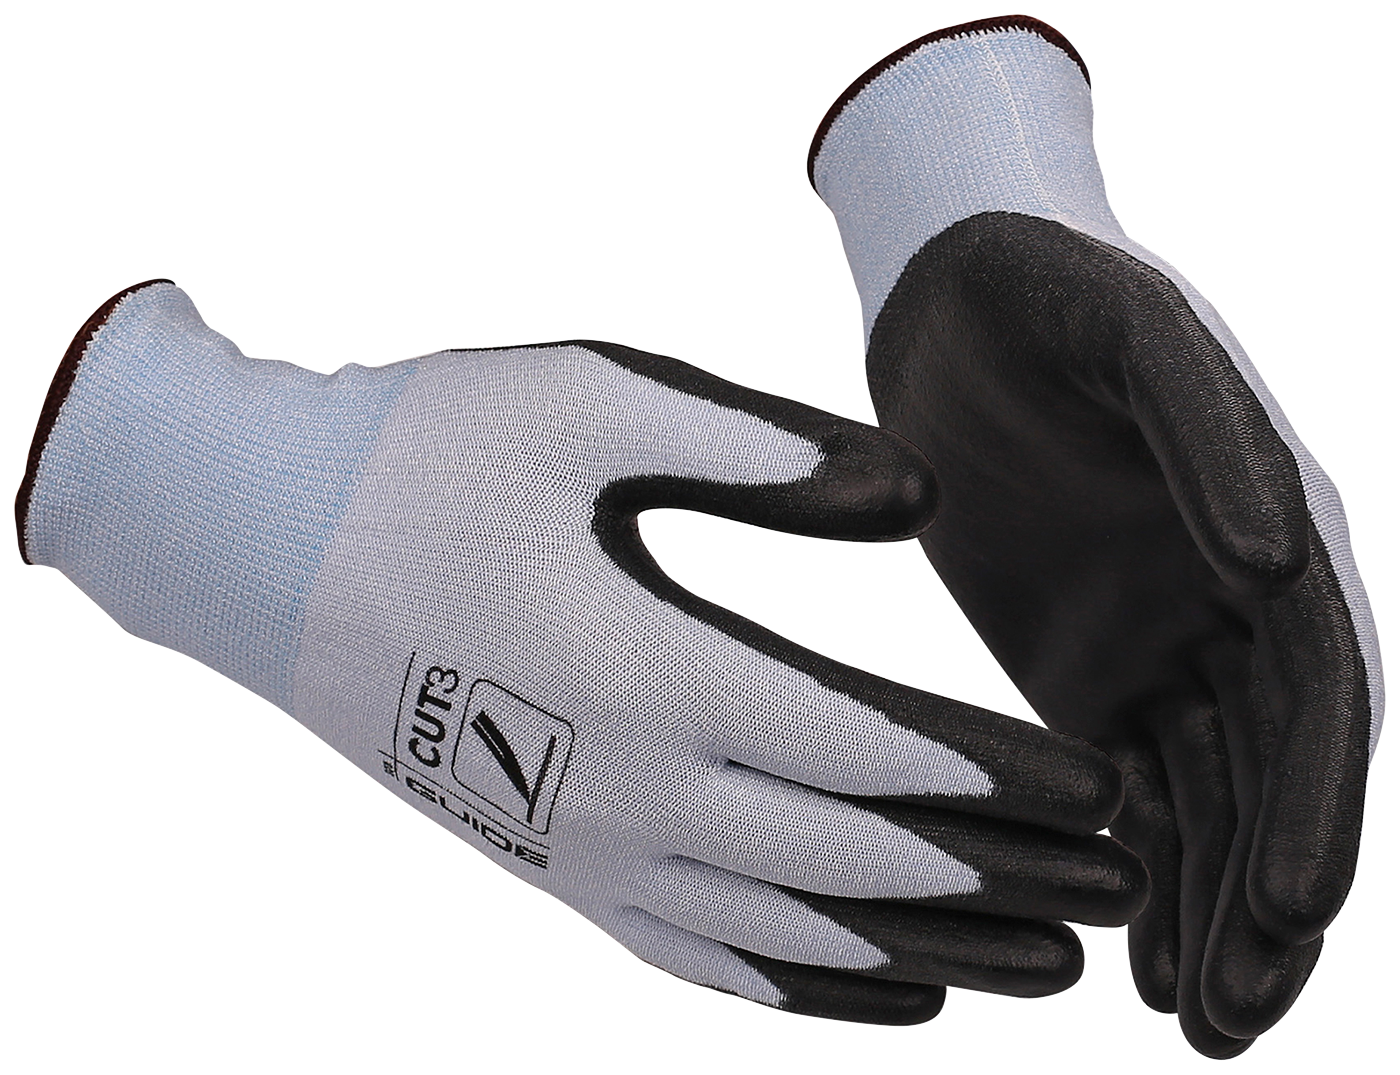 Cut Protection Glove GUIDE 308